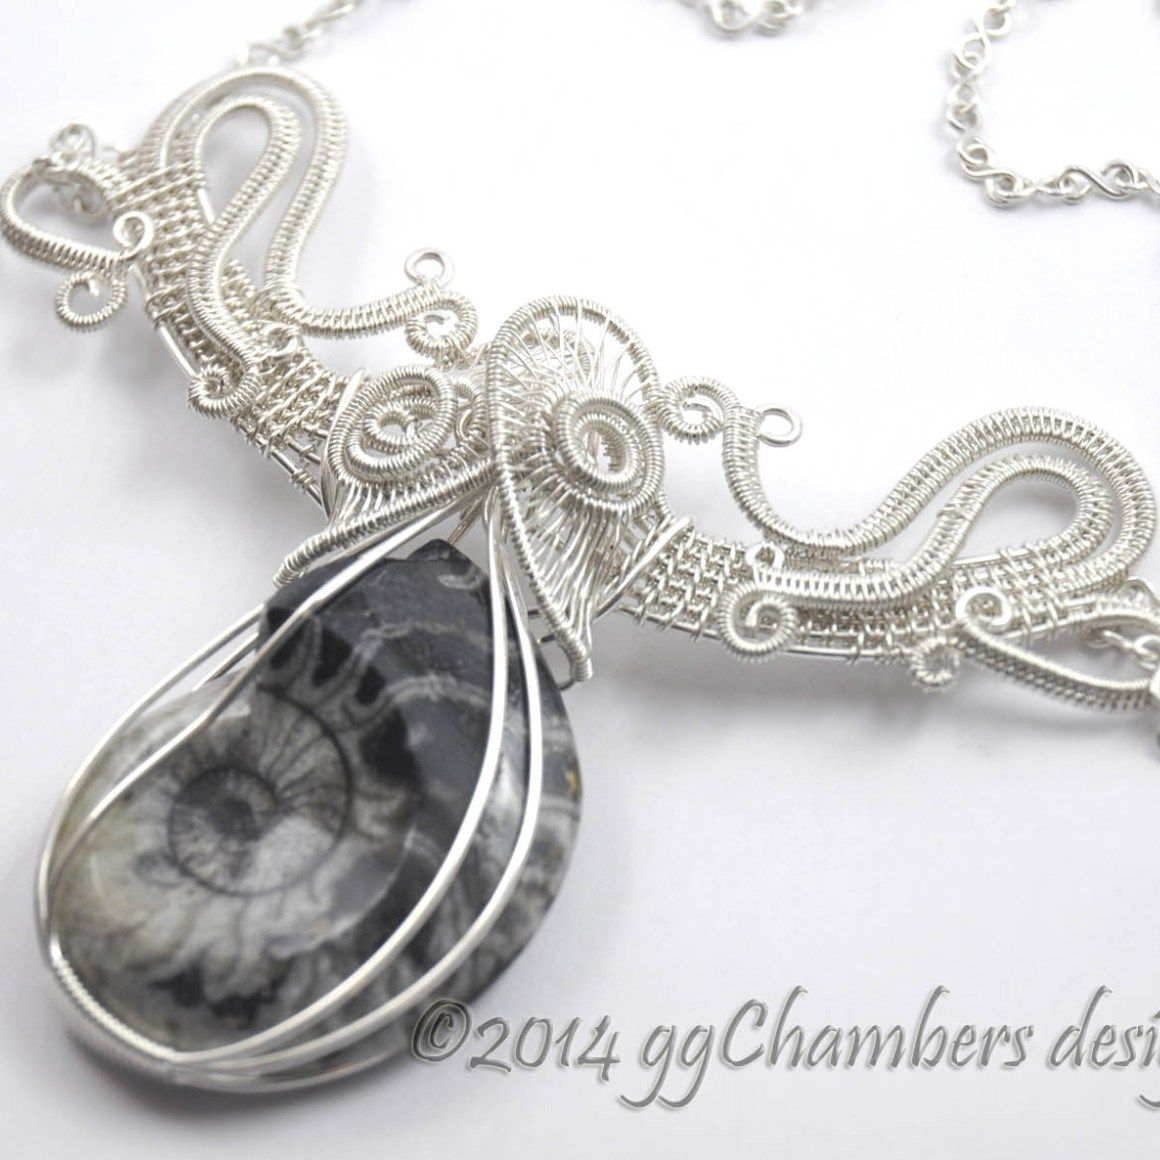 Sterling Silver Woven Wire Helix and Goniatite Fossil Necklace